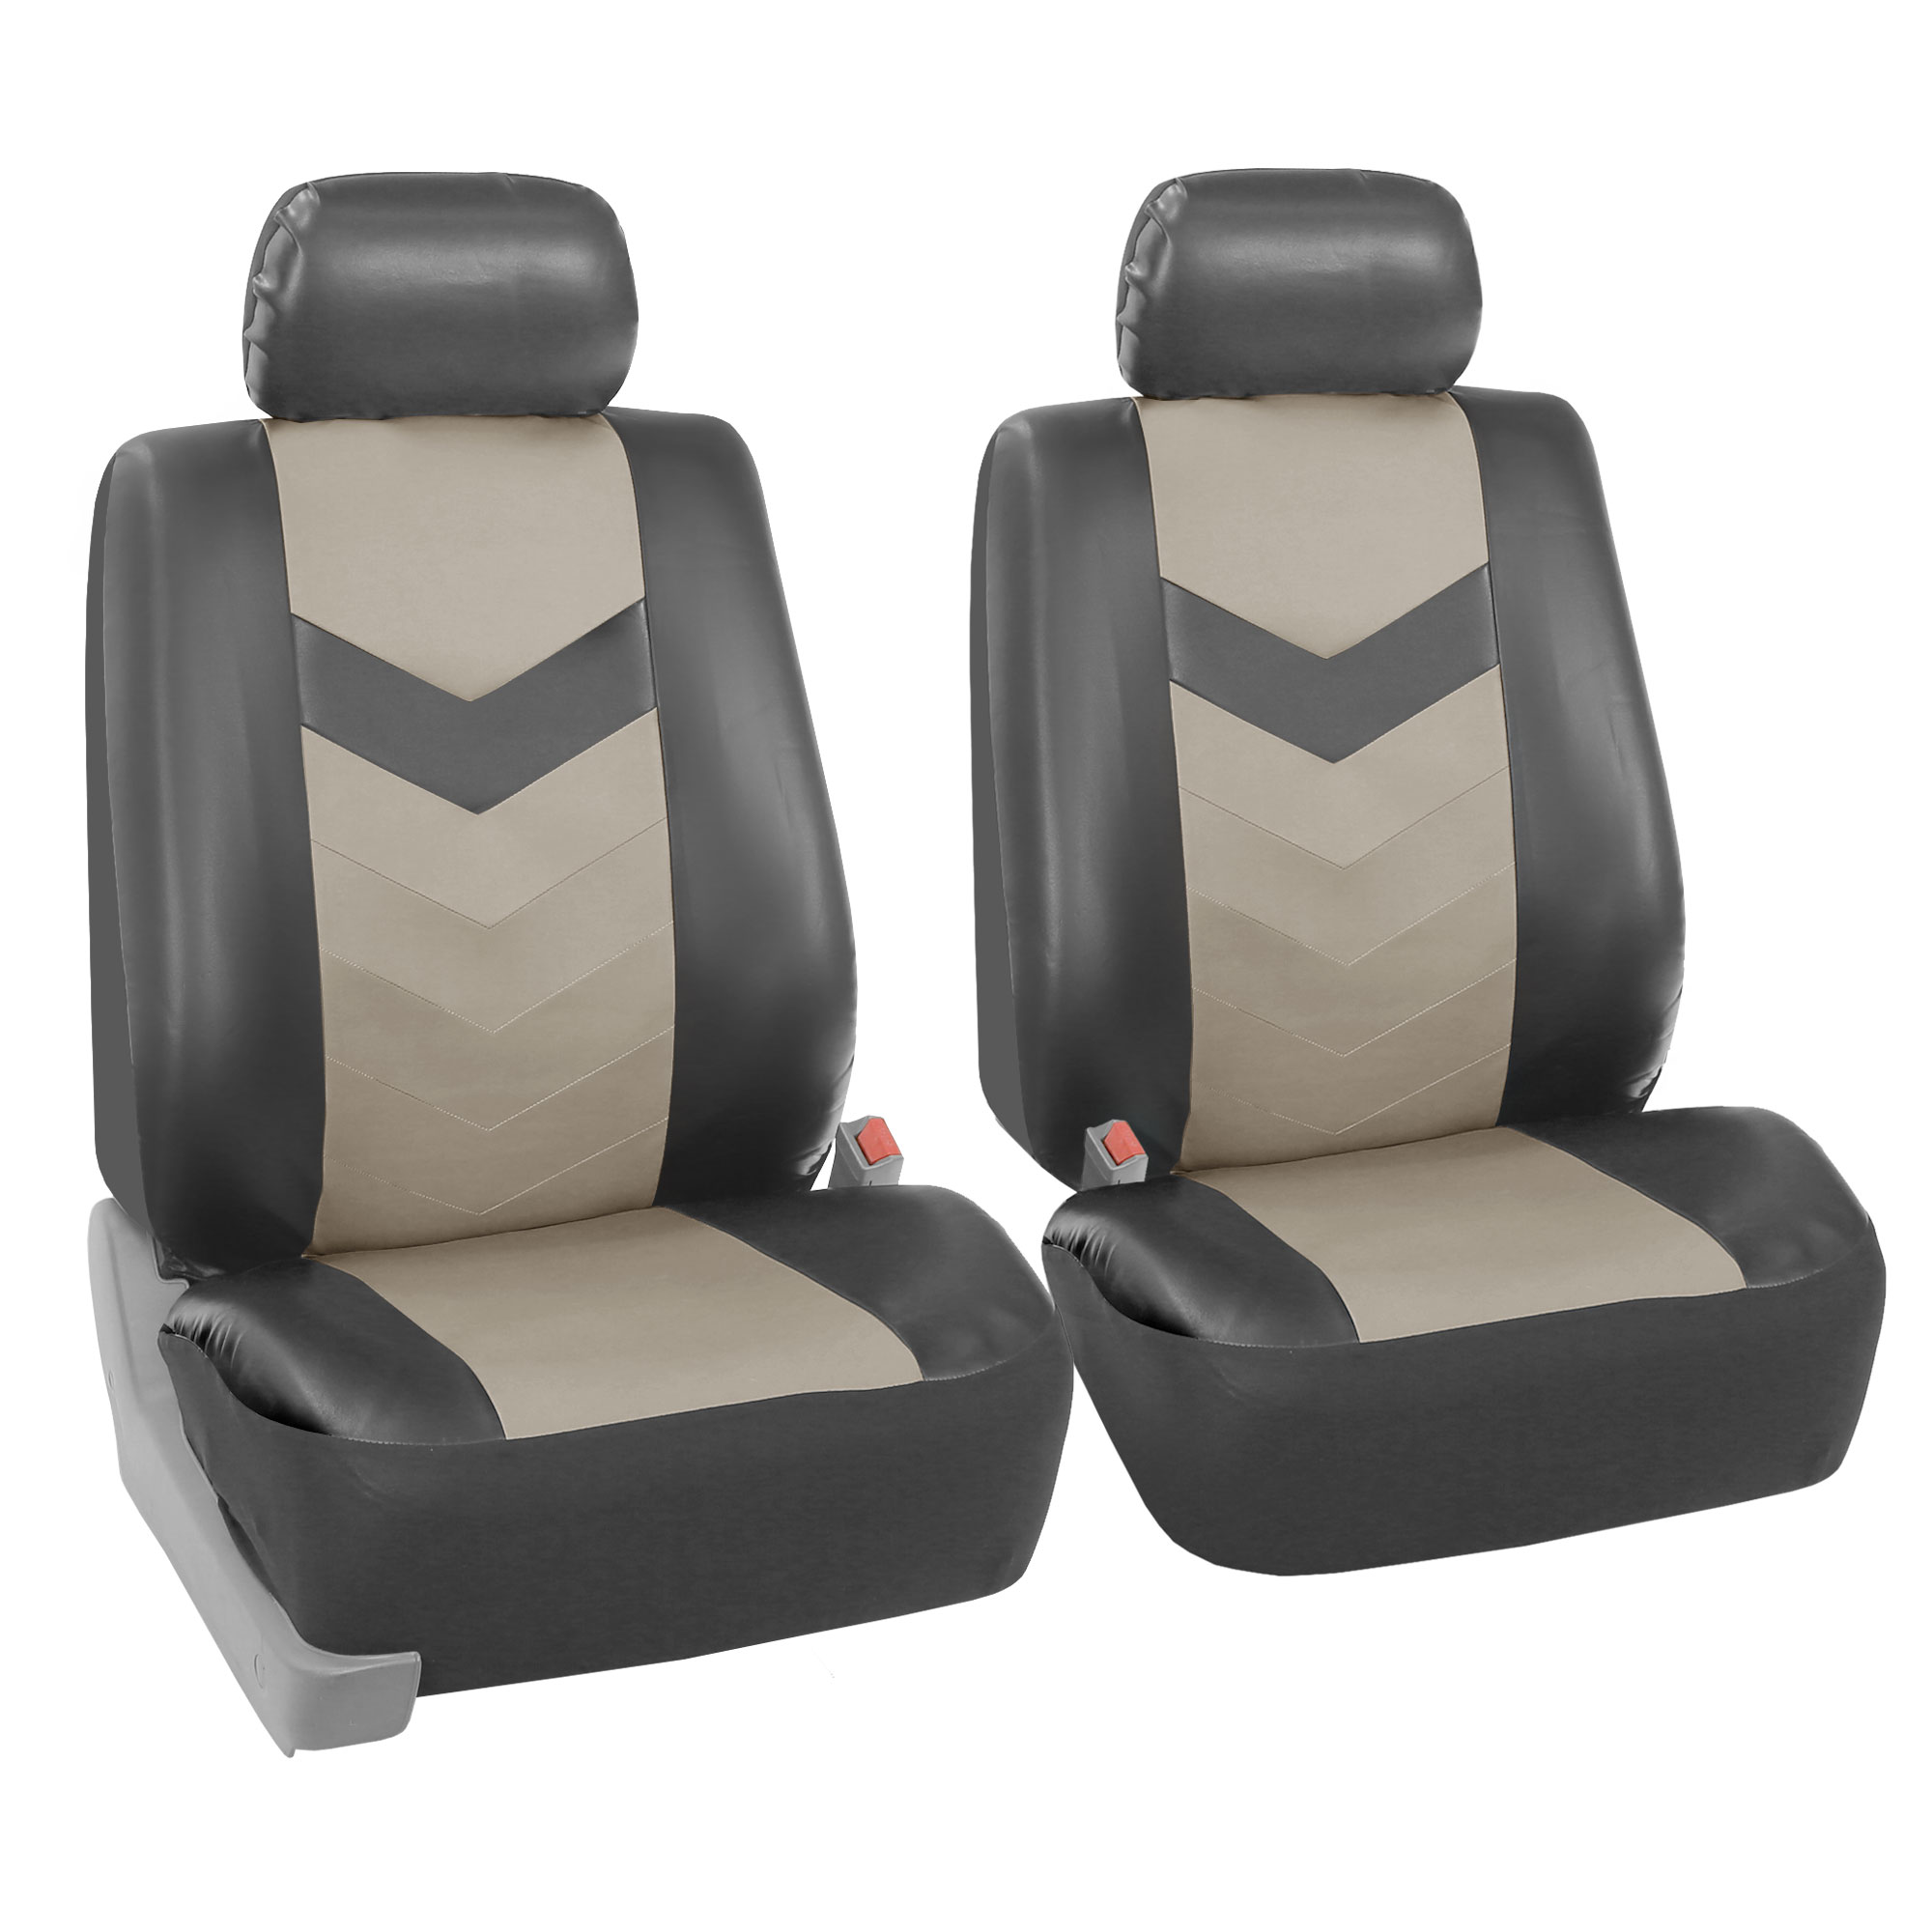 FH Group Synthetic Leather Auto Seat Covers for Sedan, SUV, Van, Truck, Two Front Buckets, 2 Tone Gray